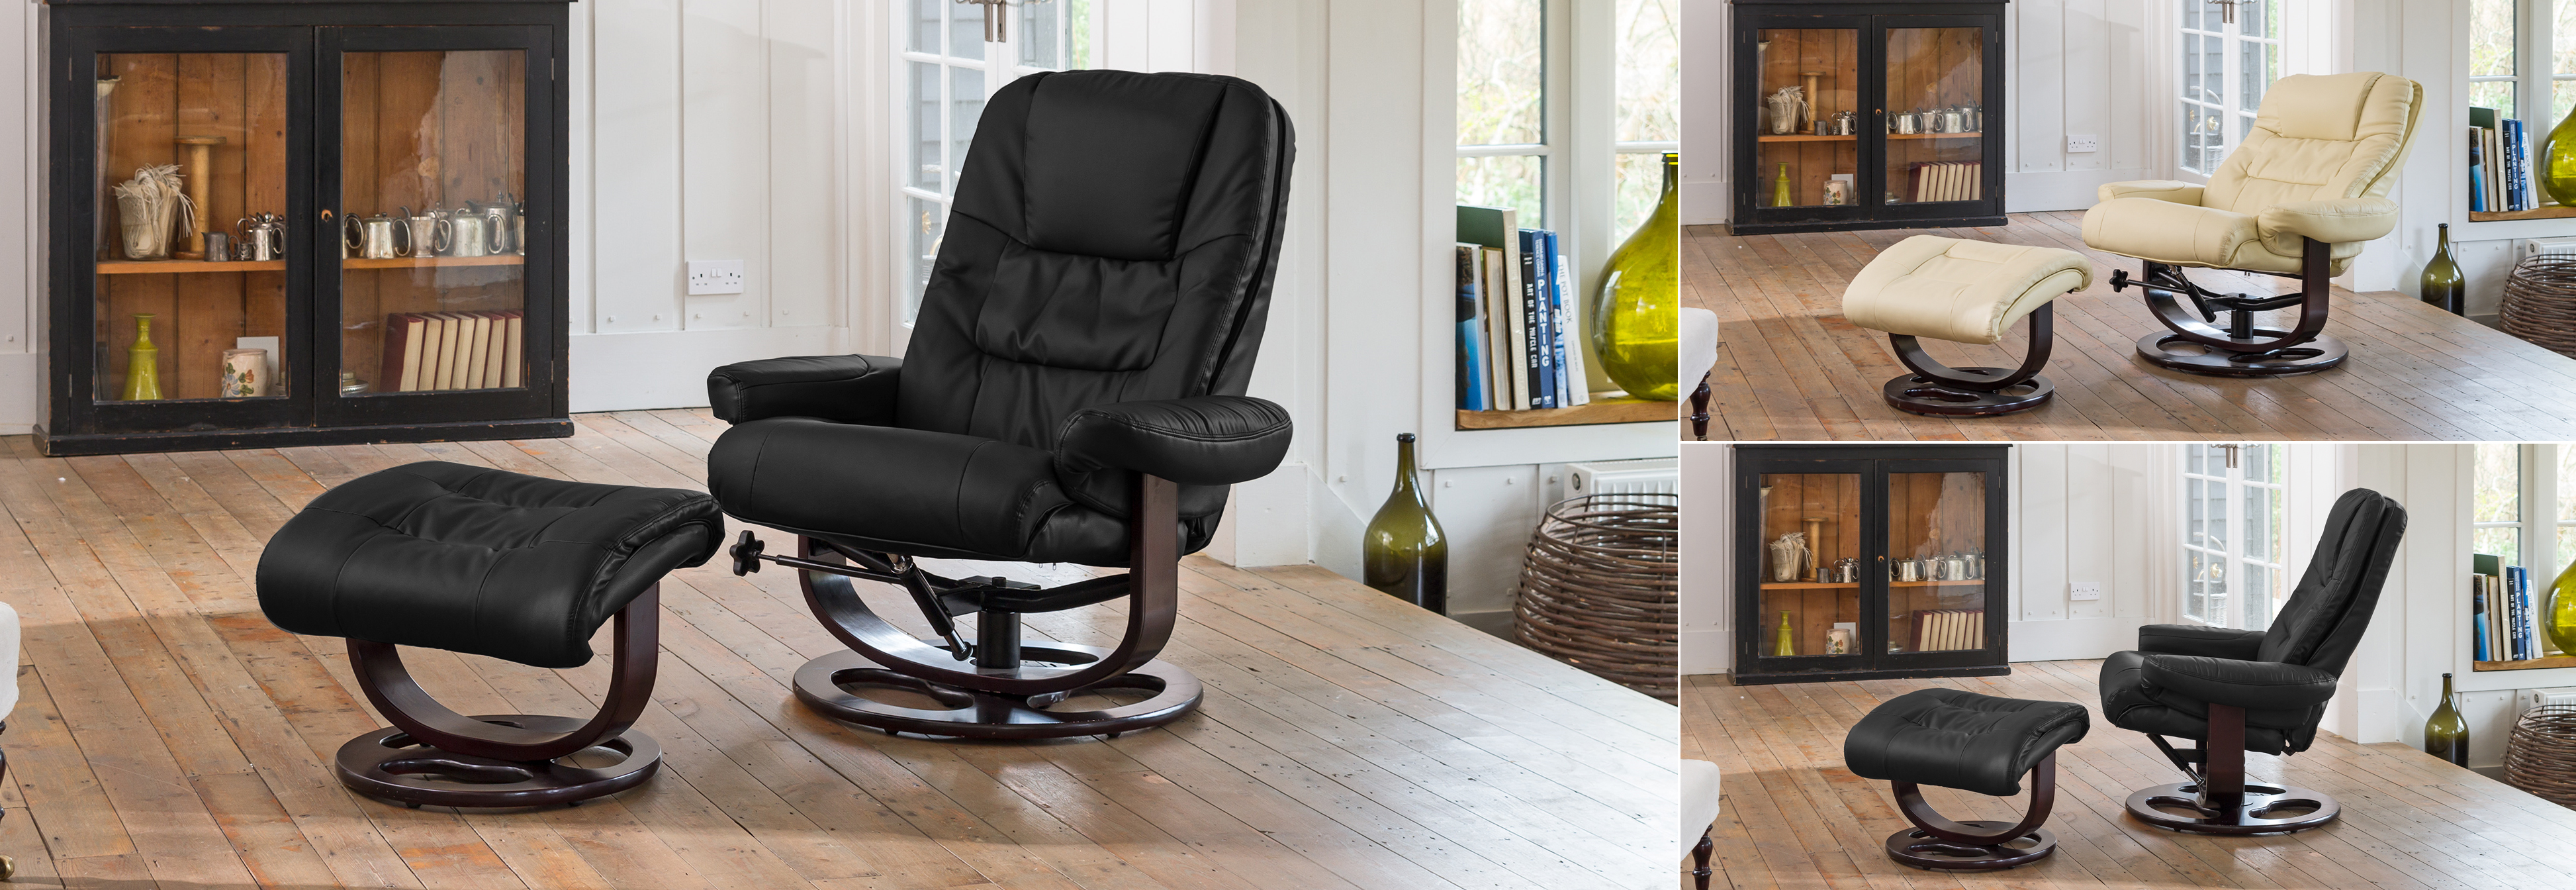 Broadclyst Swivel Chair black